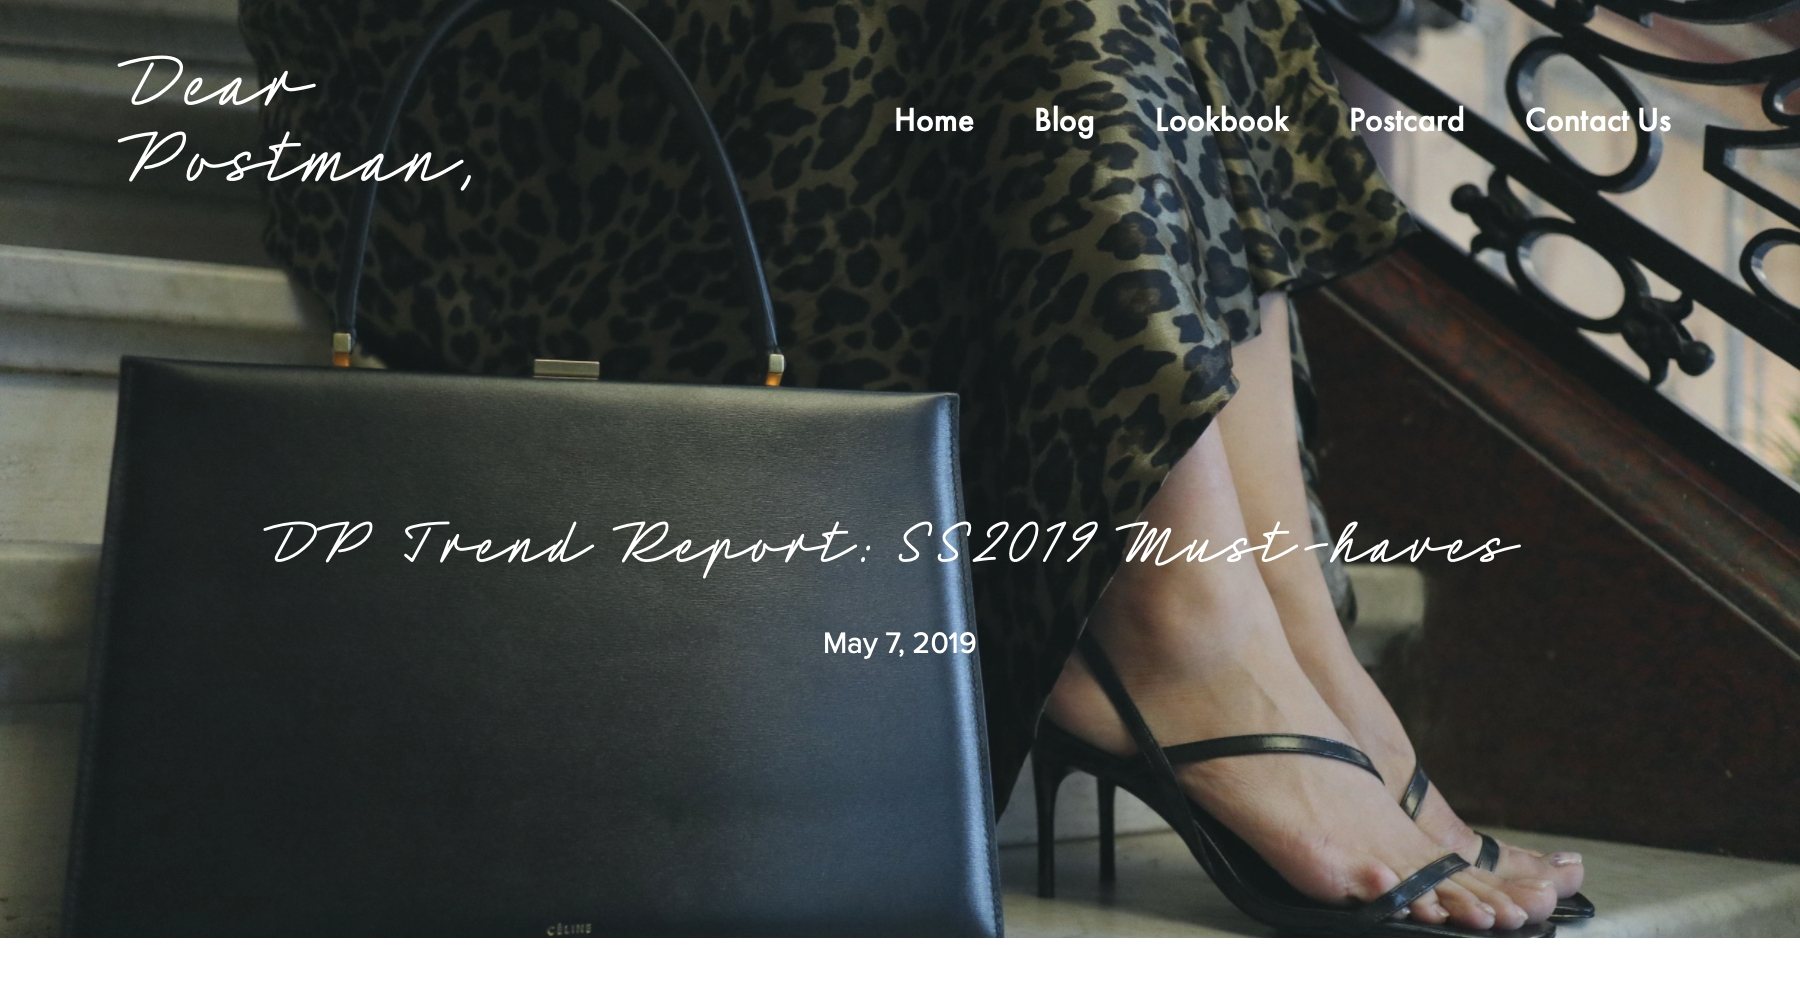 DP Trend Report: SS2019 Must-haves